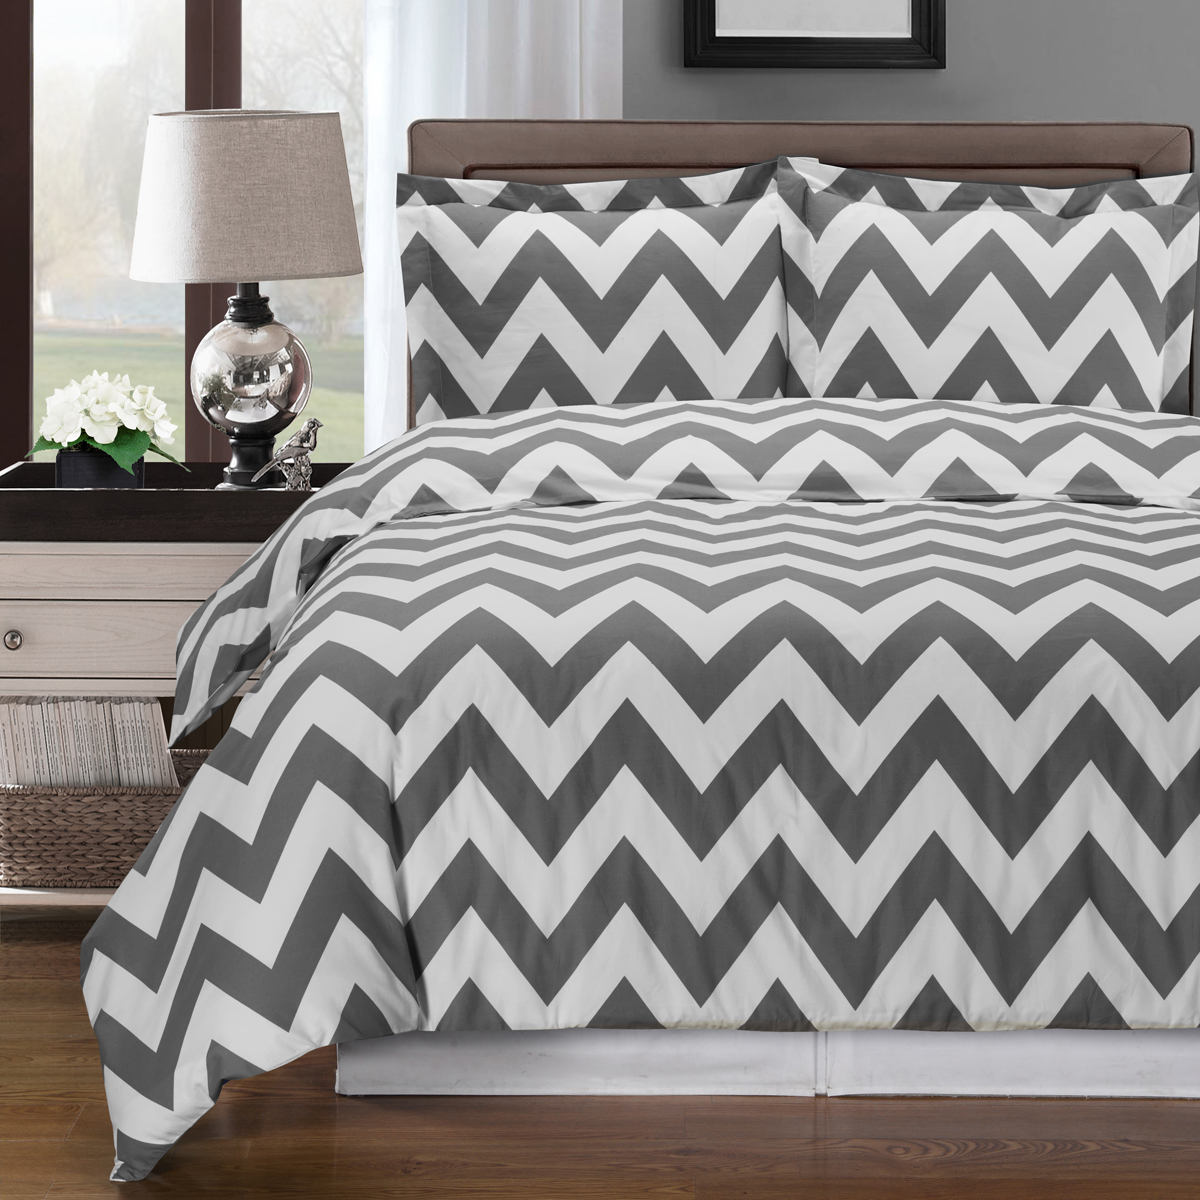 Luxury 3-Piece Chevron Reversible Printed Cotton Duvet Covers and Shams Set by Royal Plaza Textiles, Inc.